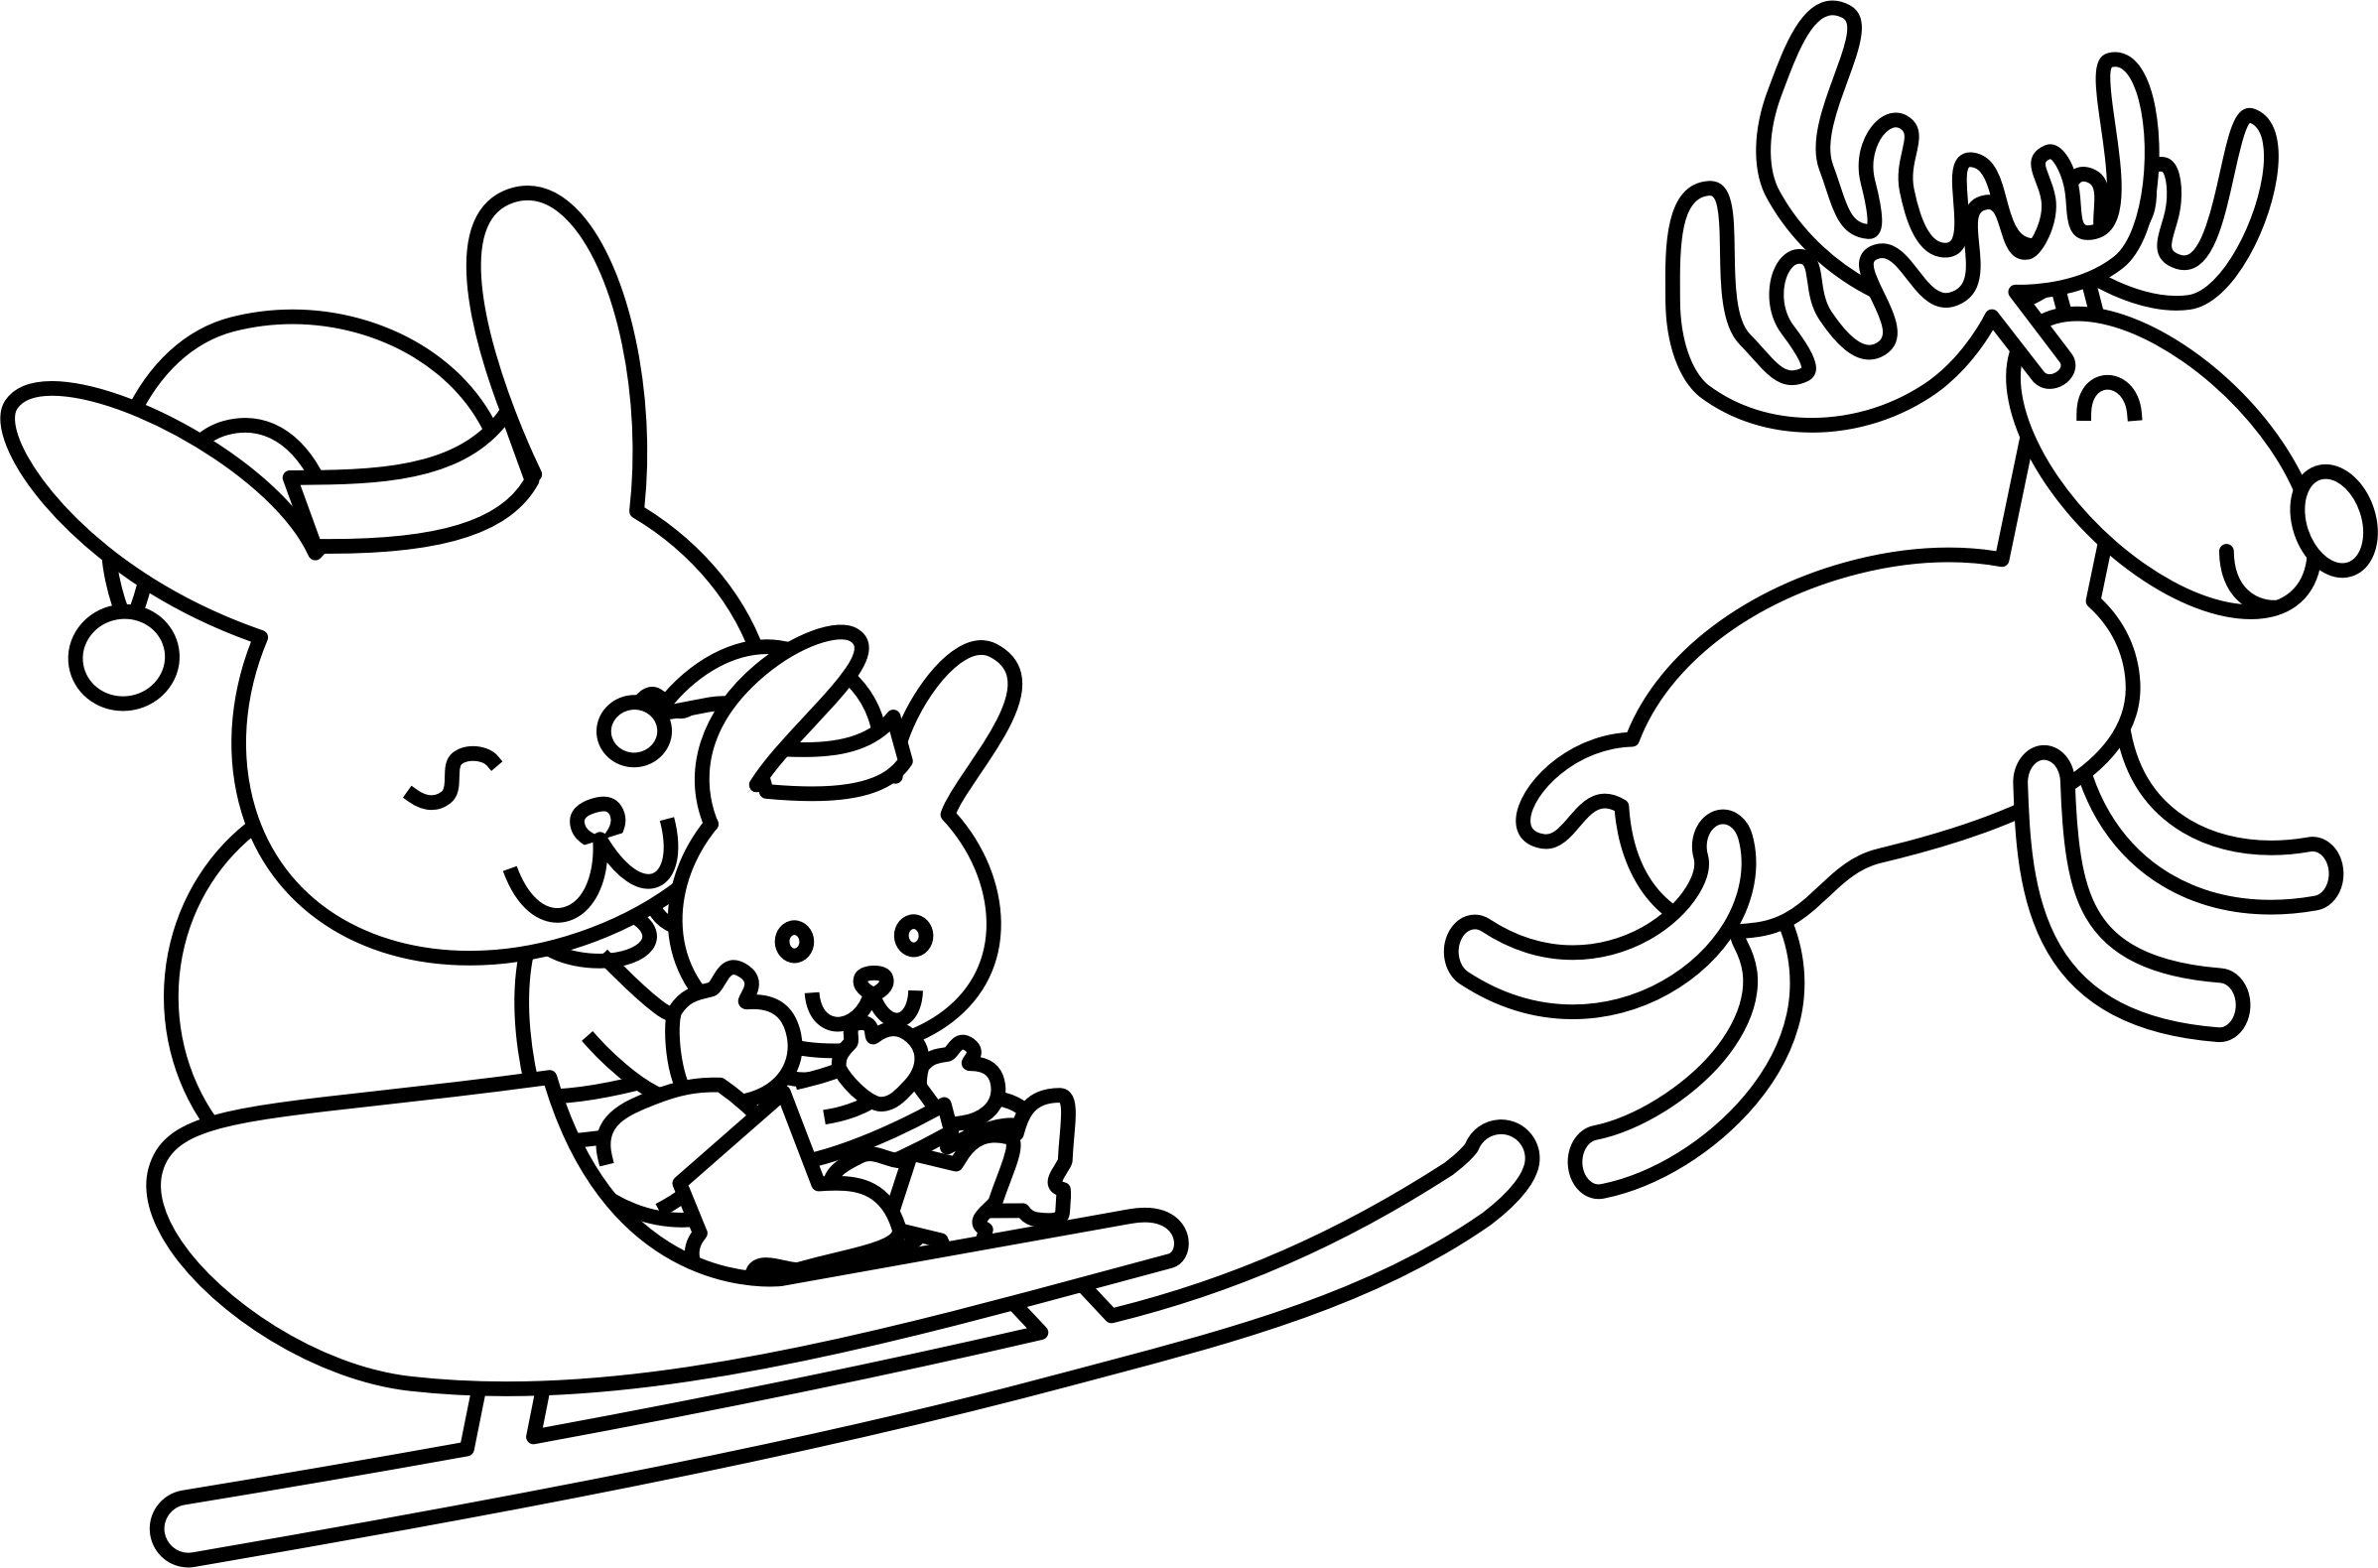 Xmas Coloring Book With Santa Claus Christmas Black And White Clip Art